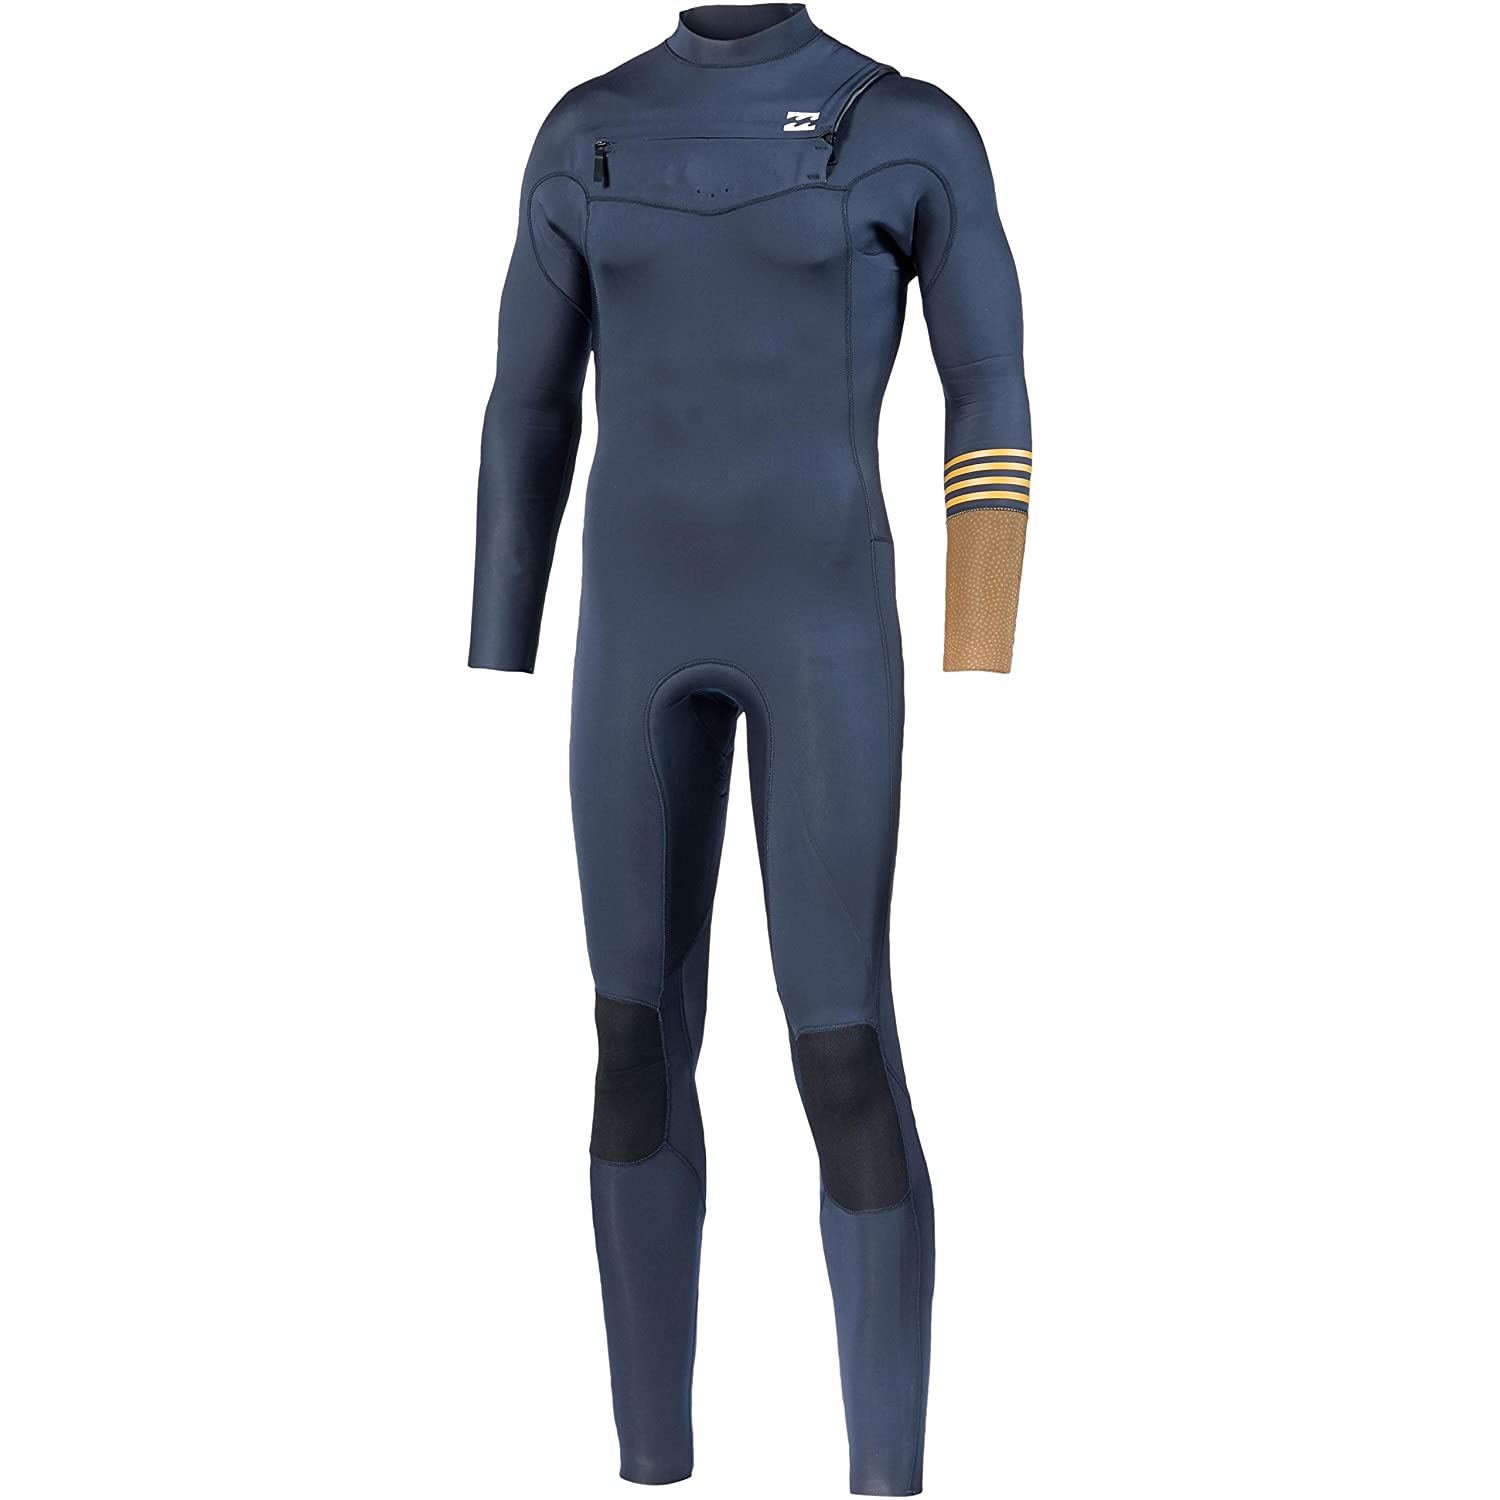 完売 2017年Billabong mm Revolution Tribong 3/ Revolution 2 mm/ Chest Zip Wetsuitスレートブルーf43 m16 B073NZCWF9 Medium, 美保関町:499179e1 --- realcalcados.com.br